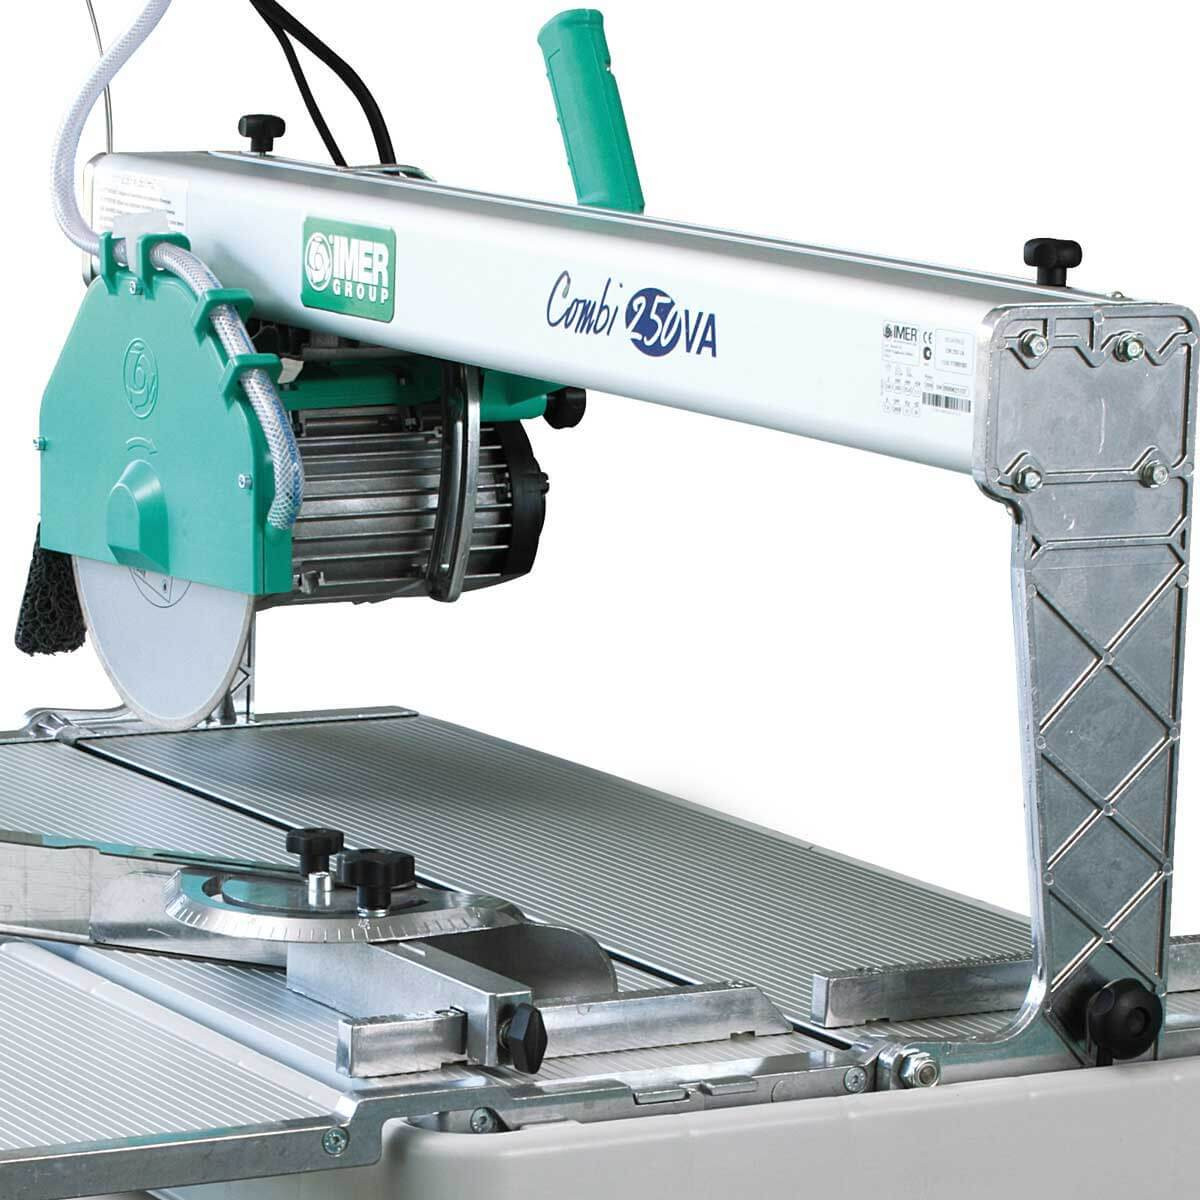 Imer Combi 250VA saw protractor guide